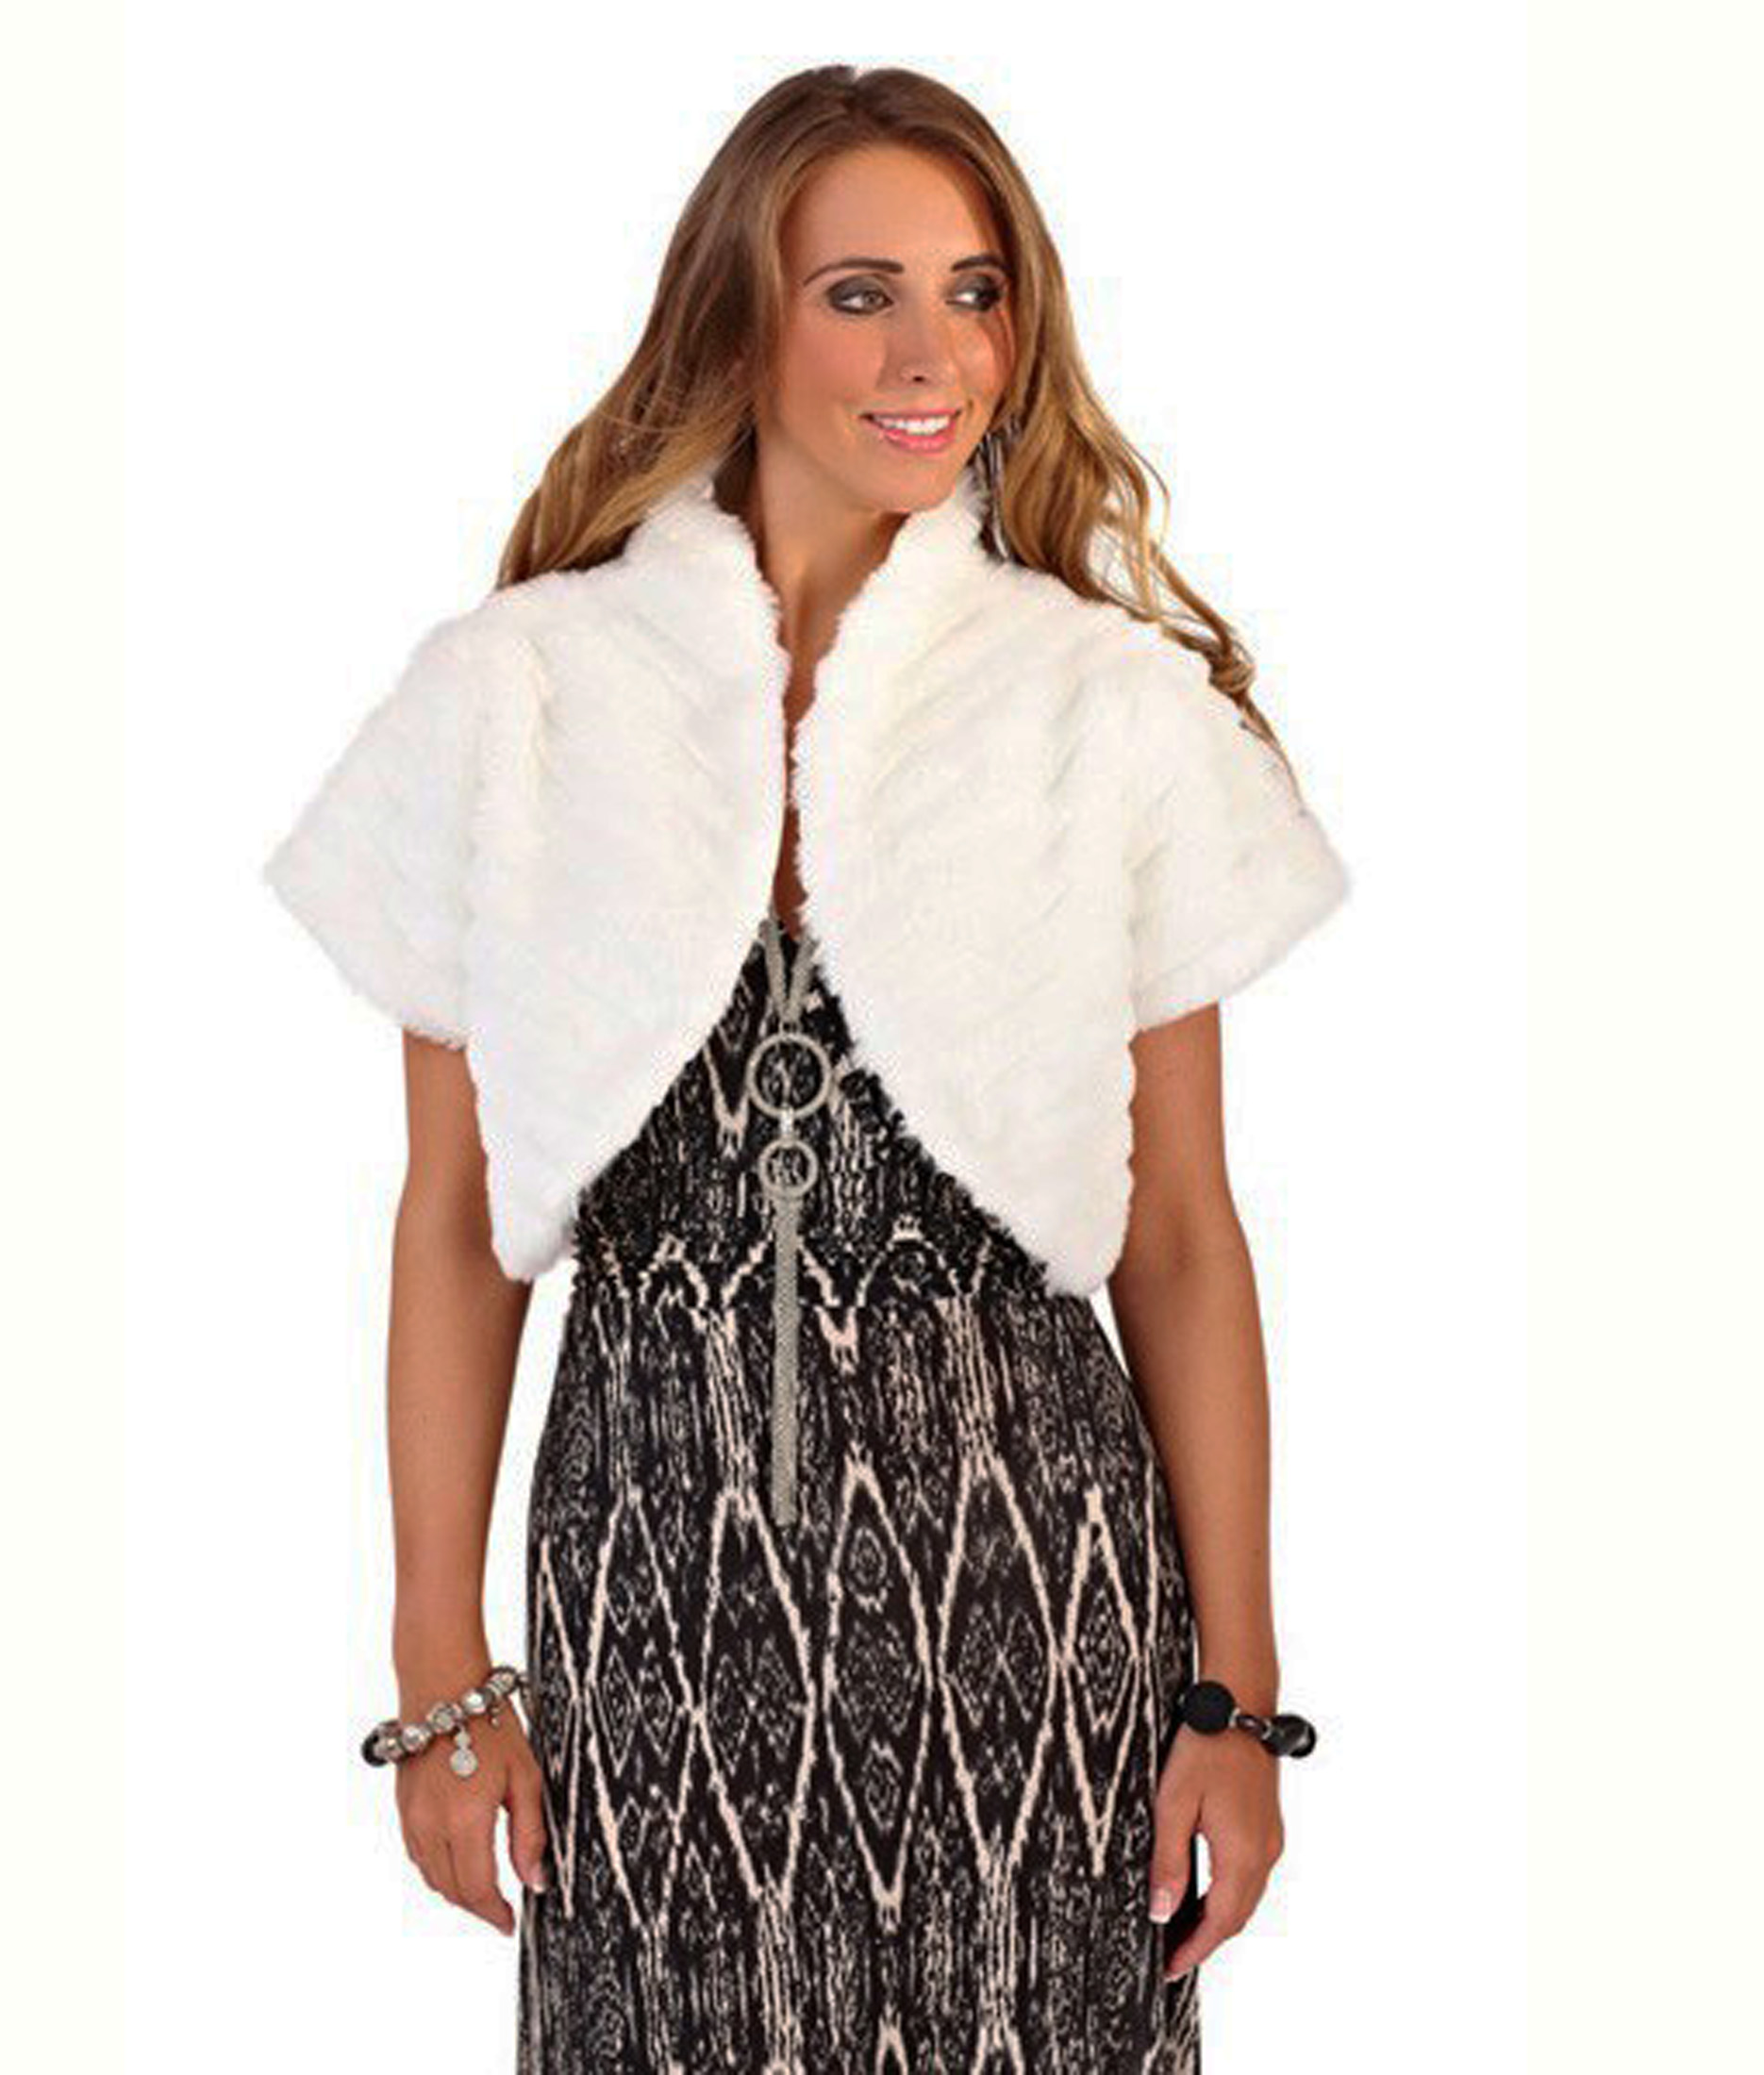 For upcoming weddings and special occasions, celebrate in style with a sophisticated selection of lace, sequin and tiered women's jacket dresses from Dillard's.